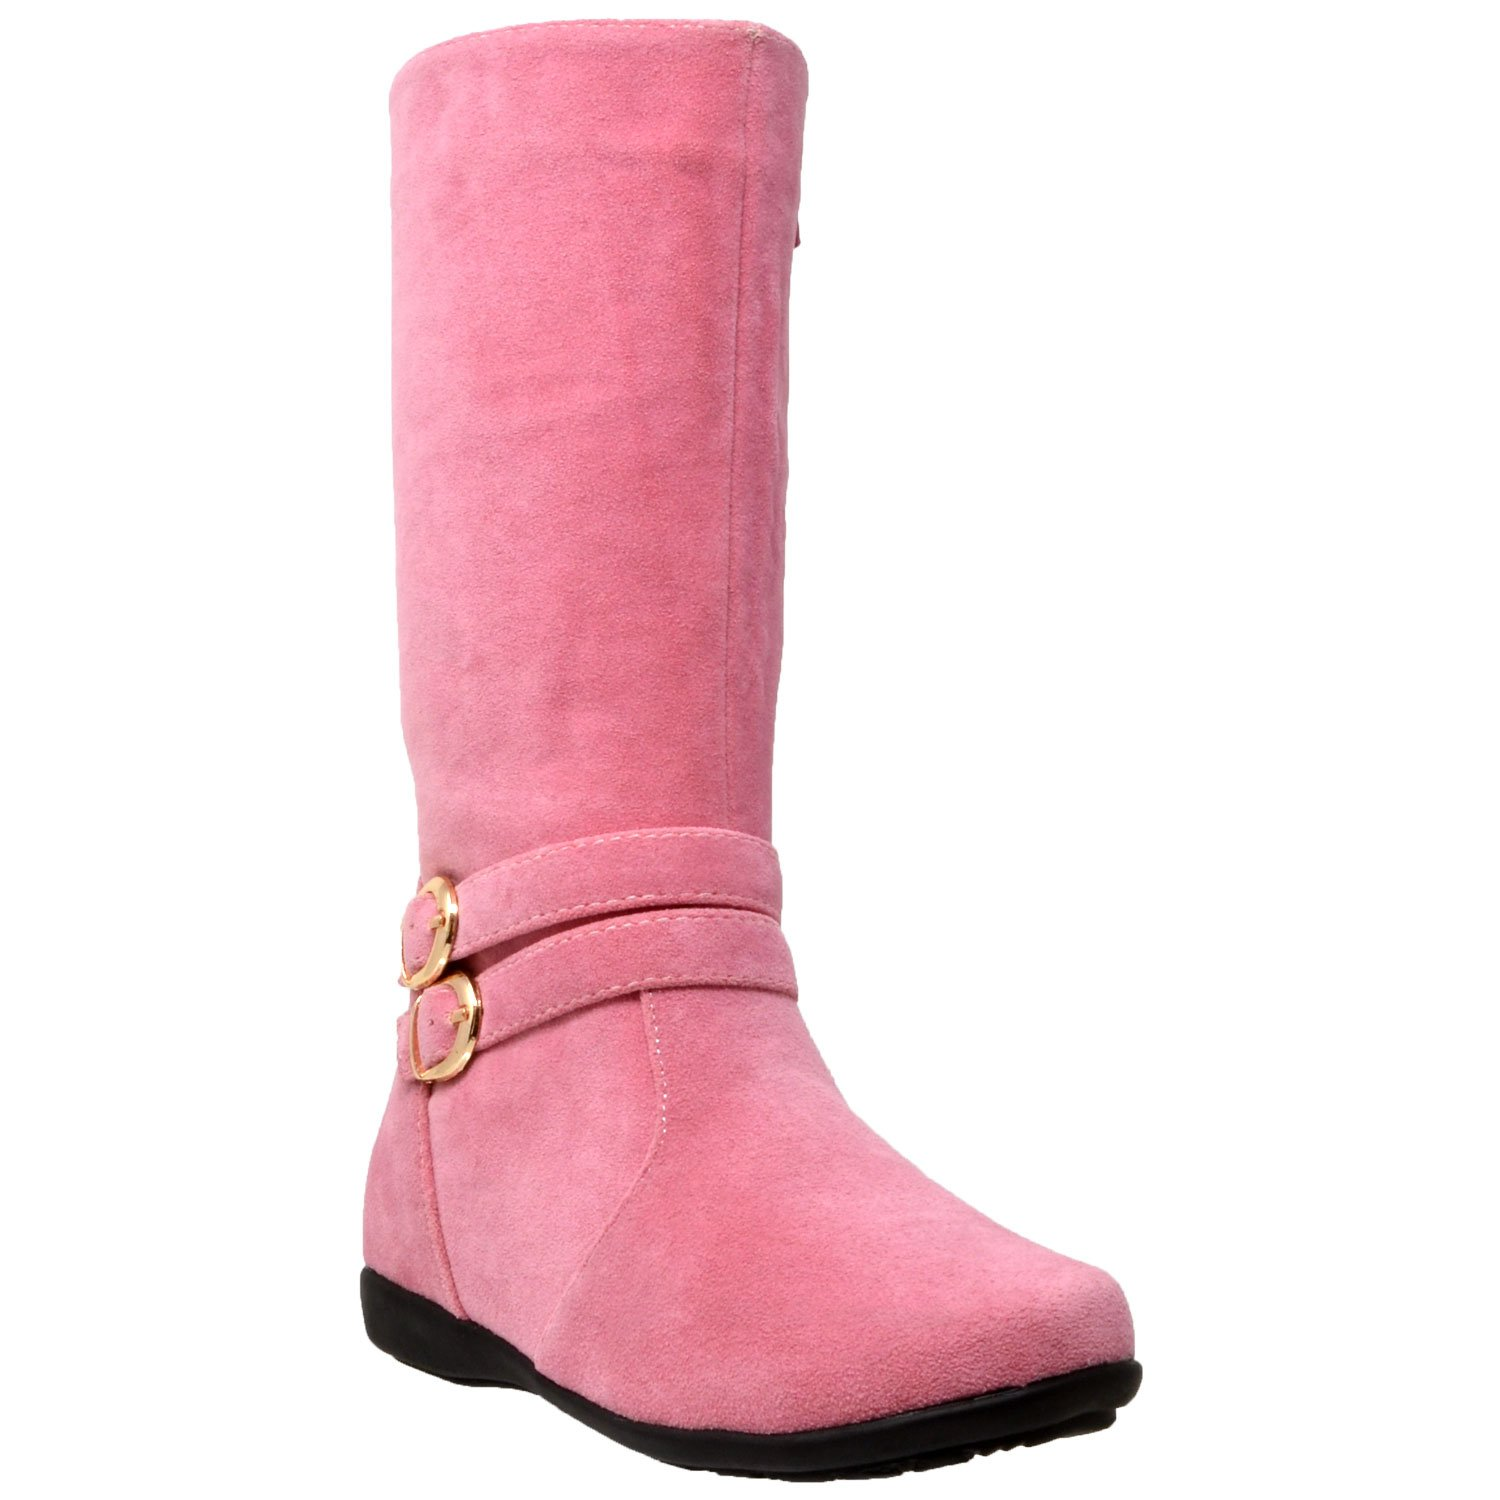 80db584e5c899 Amazon.com | Generation Y Knee High Flat Boots Little Kids Quilted Leather  Gold Buckle Accent Riding GY-KB-ICE-65 | Boots